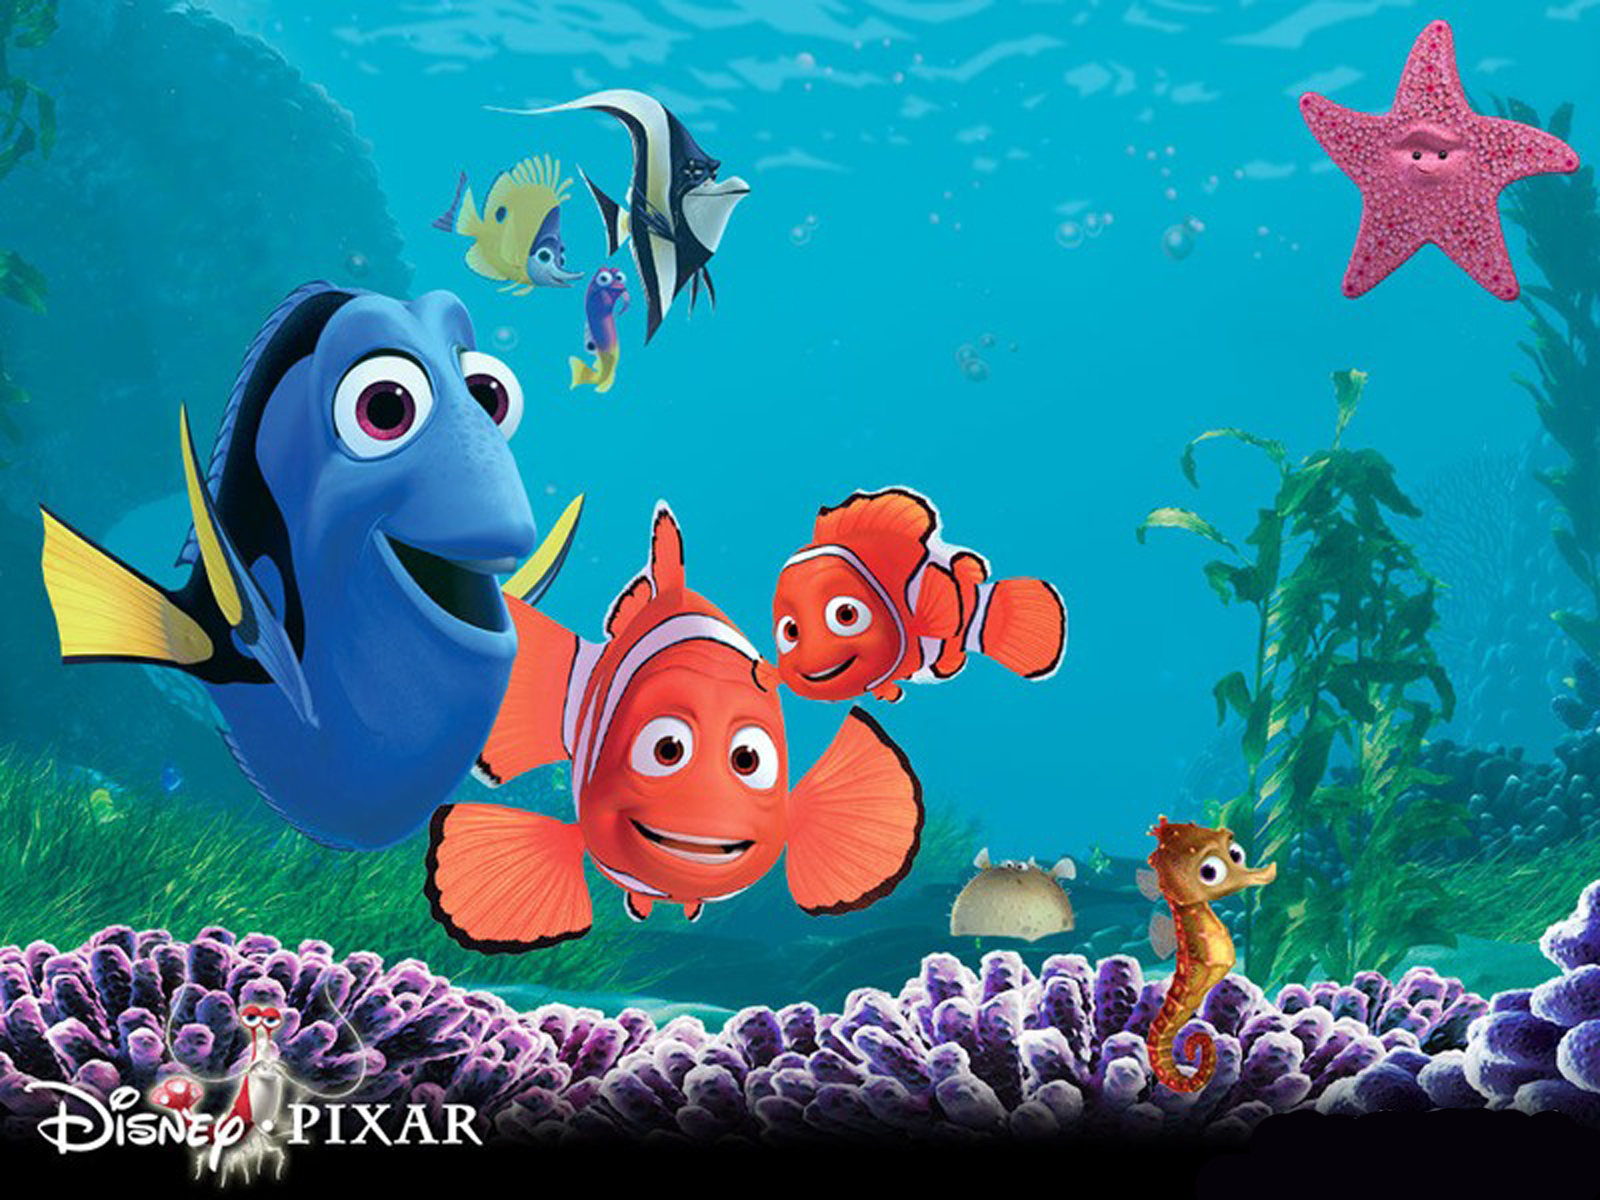 Finding Nemo 3D Movie Poster HD Wallpapers HD Wallpapers Backgrounds 1600x1200